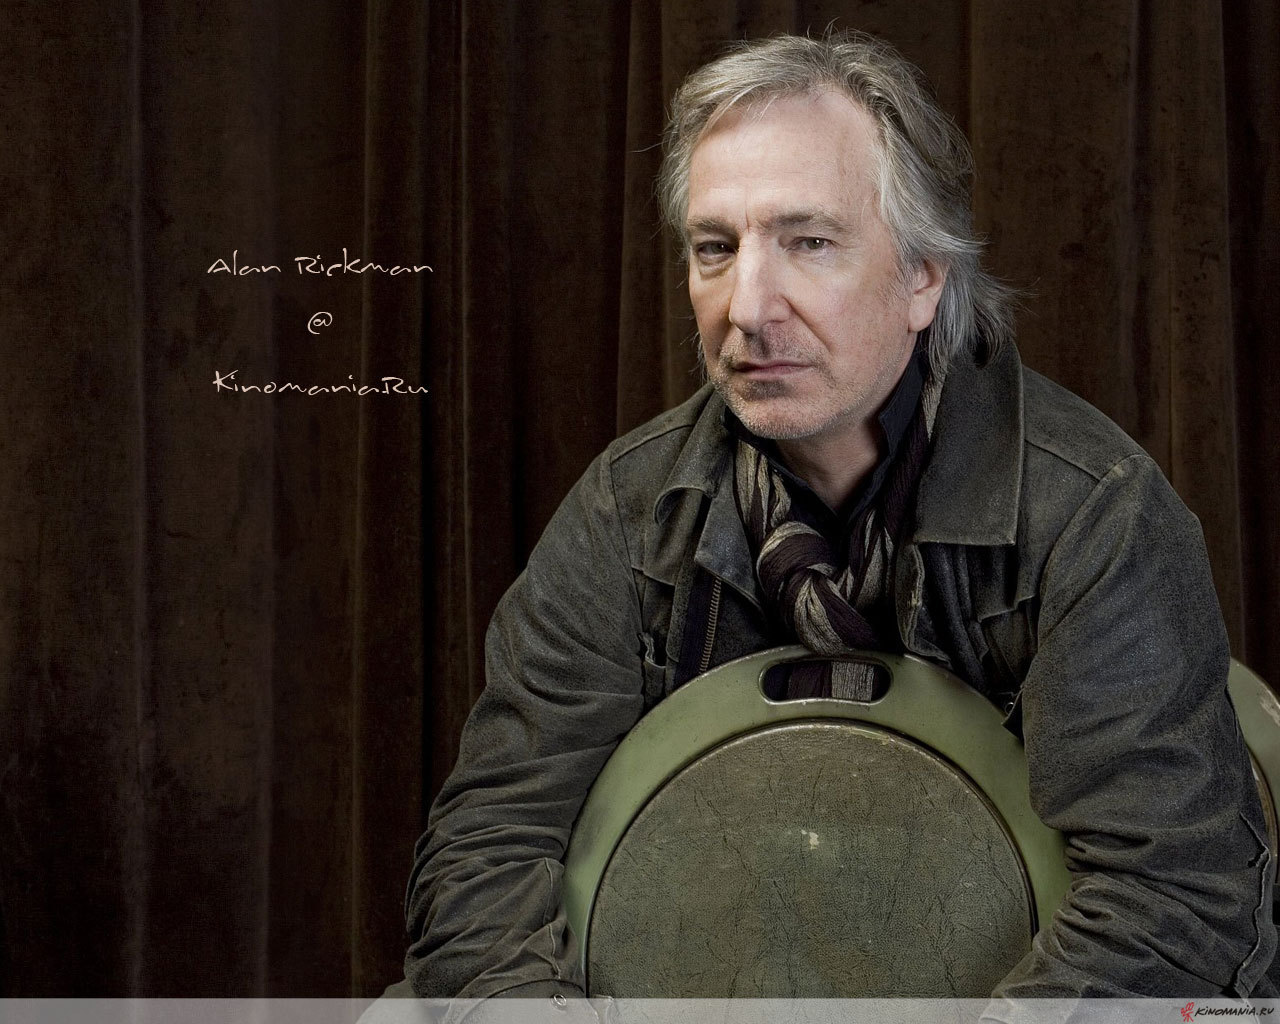 WALLPAPER: Alan Rickman Acting Quote With Photo